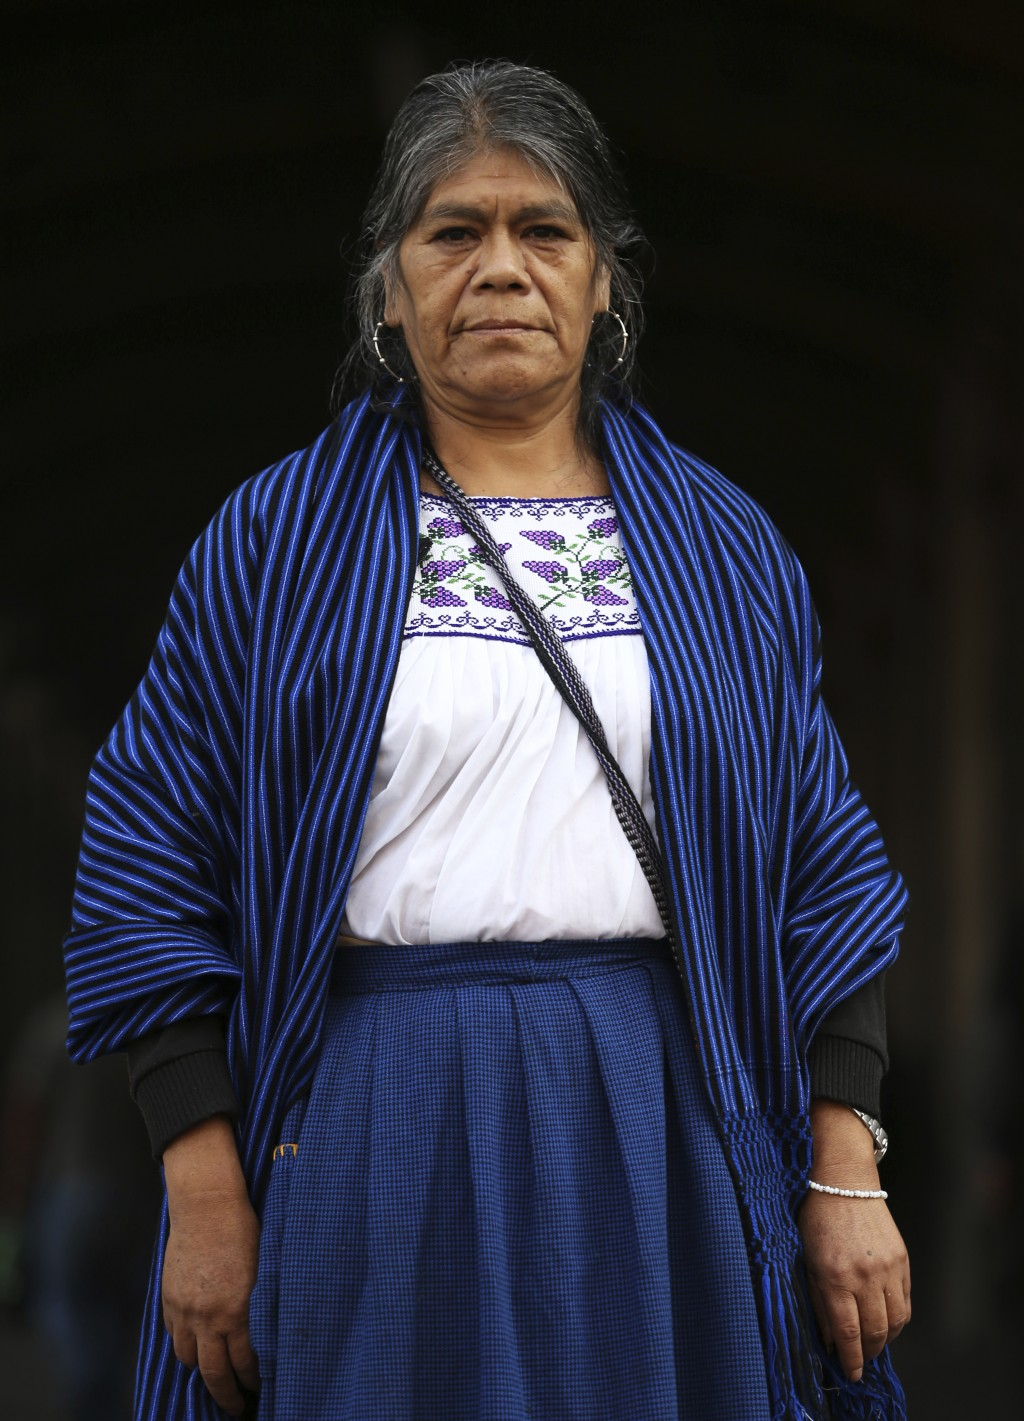 Maria Sara Guzman poses for a photo during an interview in the Zocalo in Mexico City, Friday, Nov. 29, 2019. An artisan from the Purepecha indigenous ...